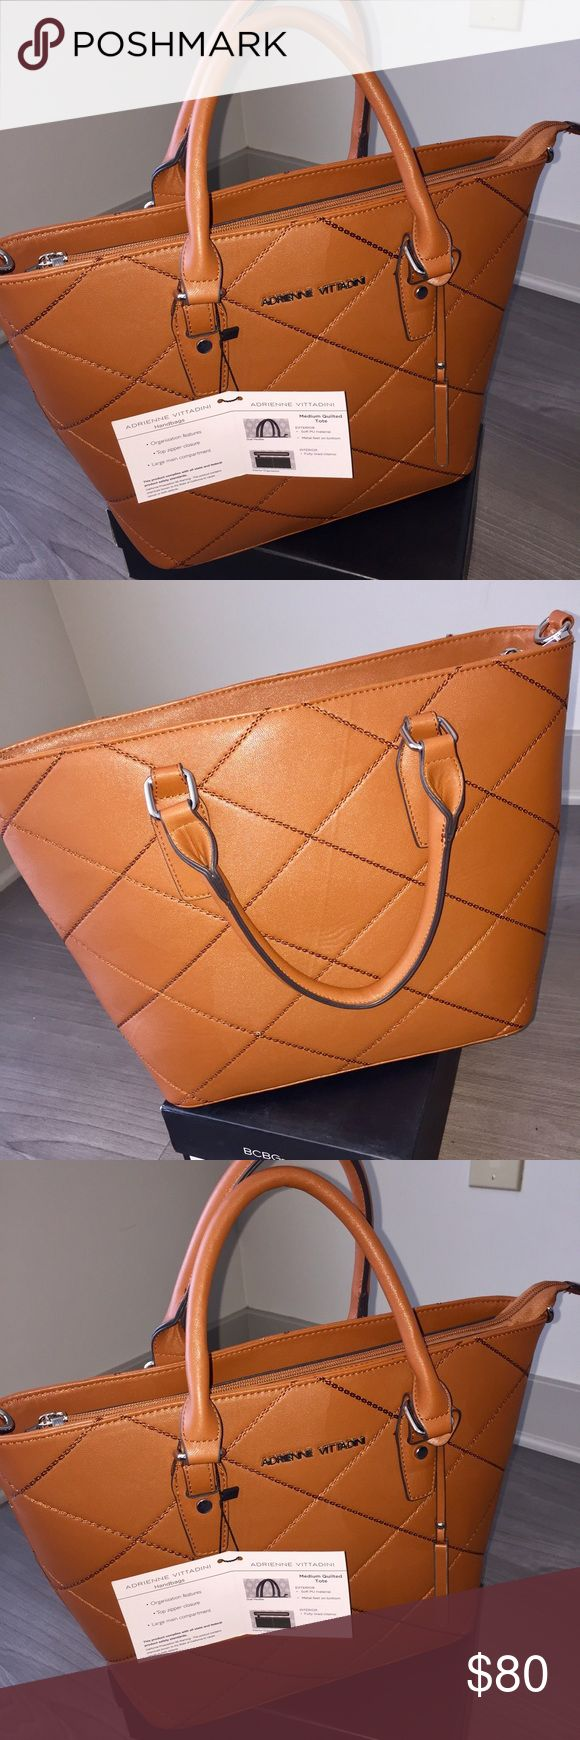 """Adrienne Vittadini Quilted Handbag Adrienne Vittadini Medium Quilted Tote.                             New with Tags!  - Top zip closure - Approx. 11"""" H x 17"""" W x 6"""" D - PU exterior Adrienne Vittadini Bags Satchels"""